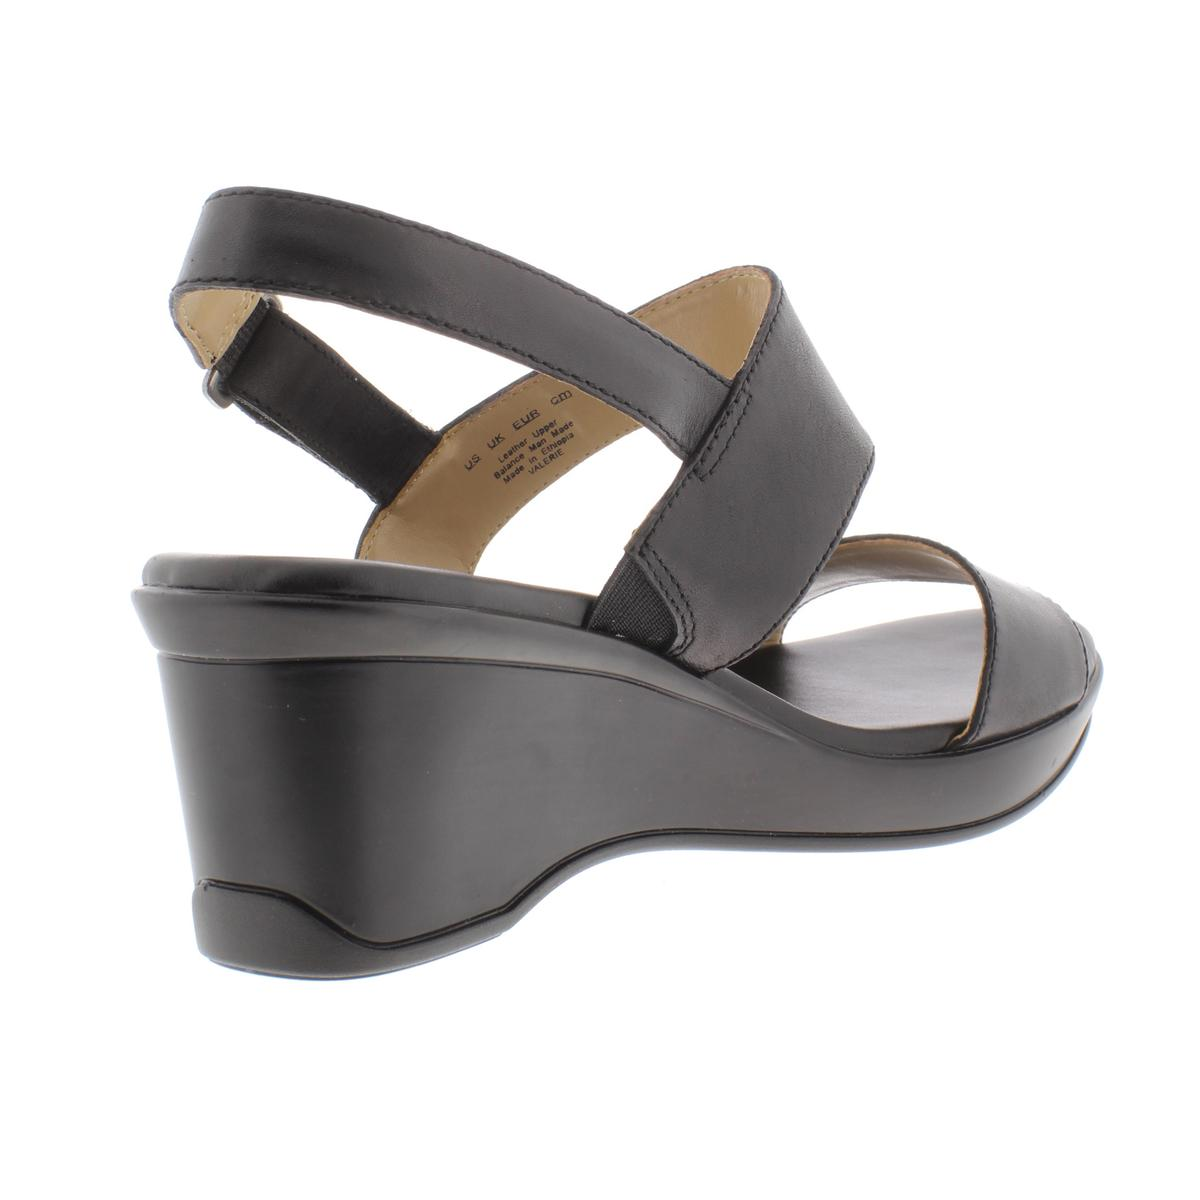 Womens Naturalizer Lincoln Sandal, Size 7.5 M - Black in